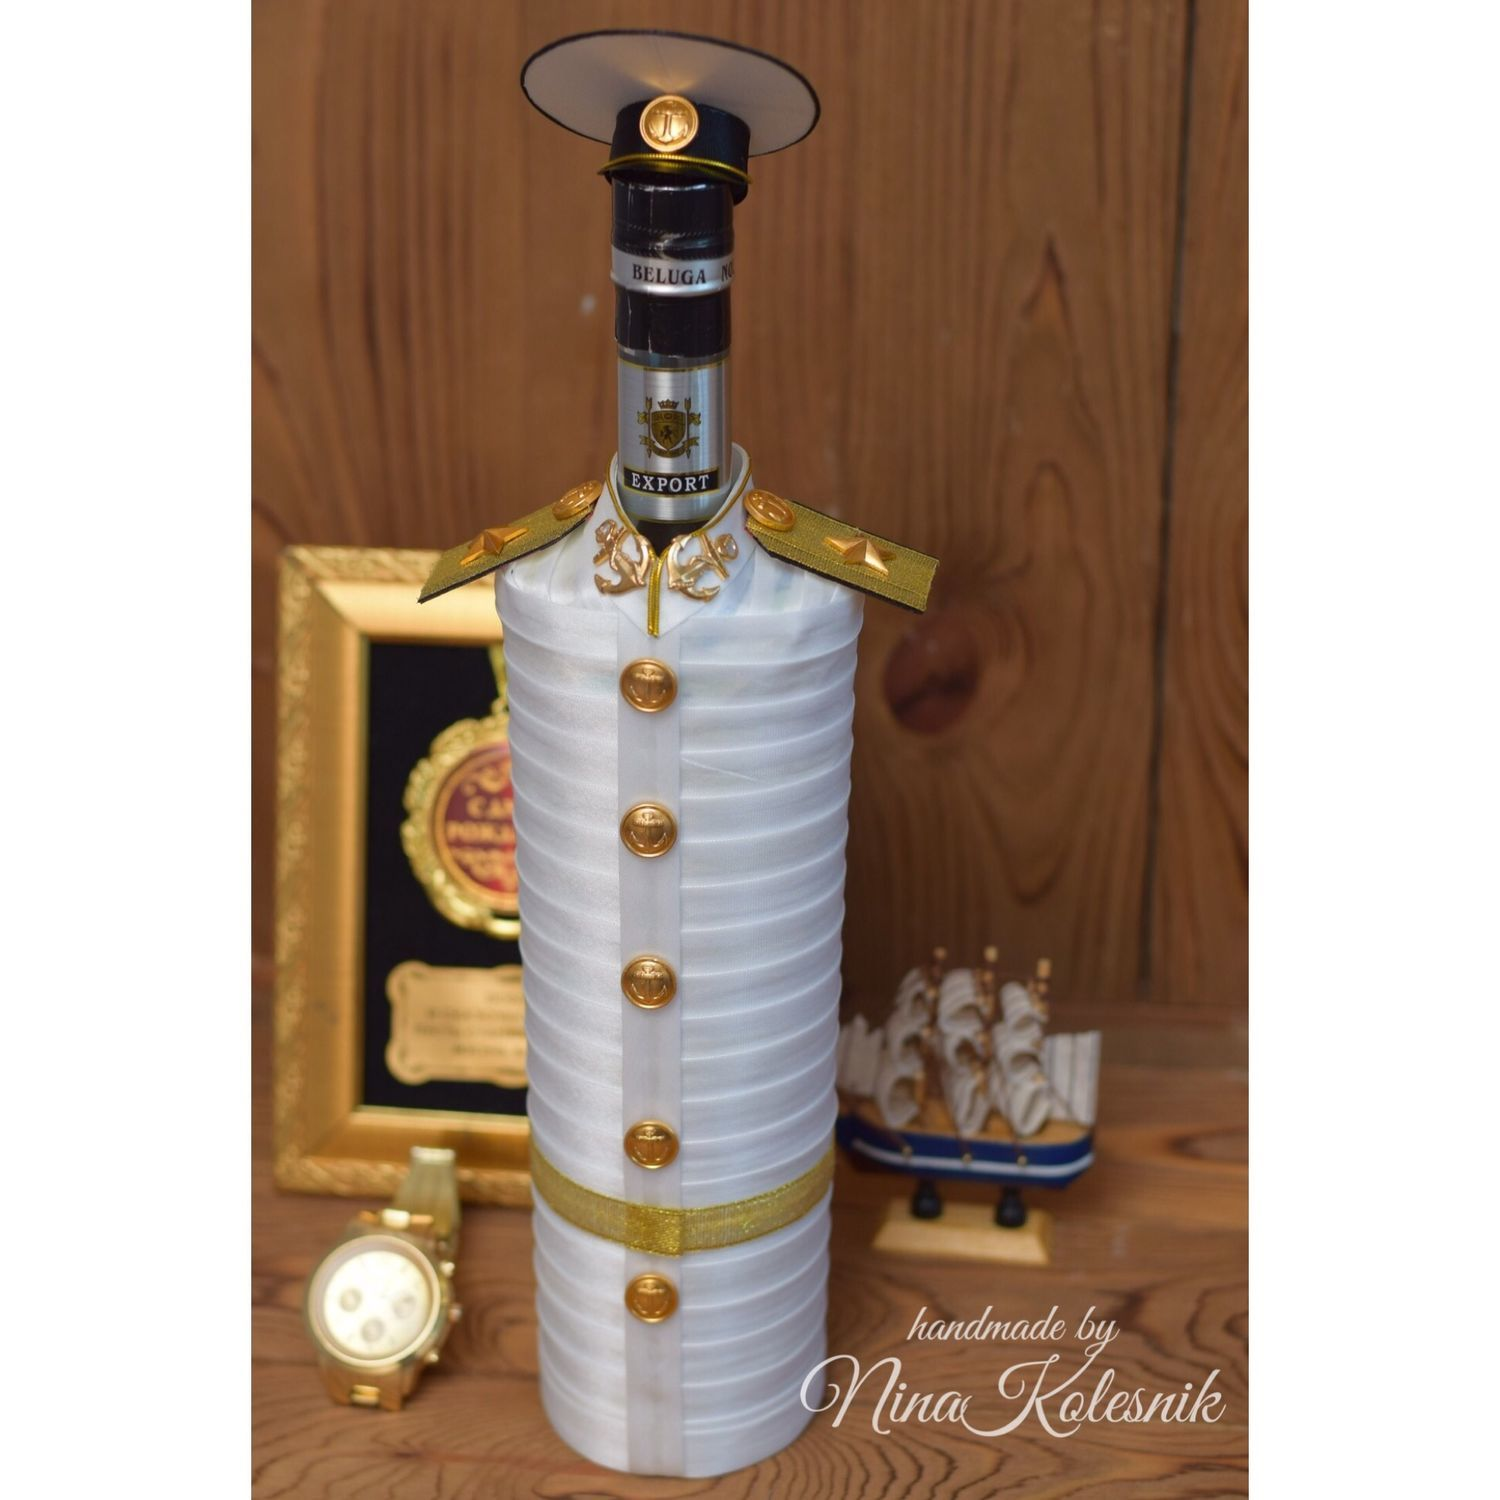 Personalized Souvenirs: Gift to the Admiral of the Navy dress jacket with shoulder straps, Name souvenirs, Moscow,  Фото №1